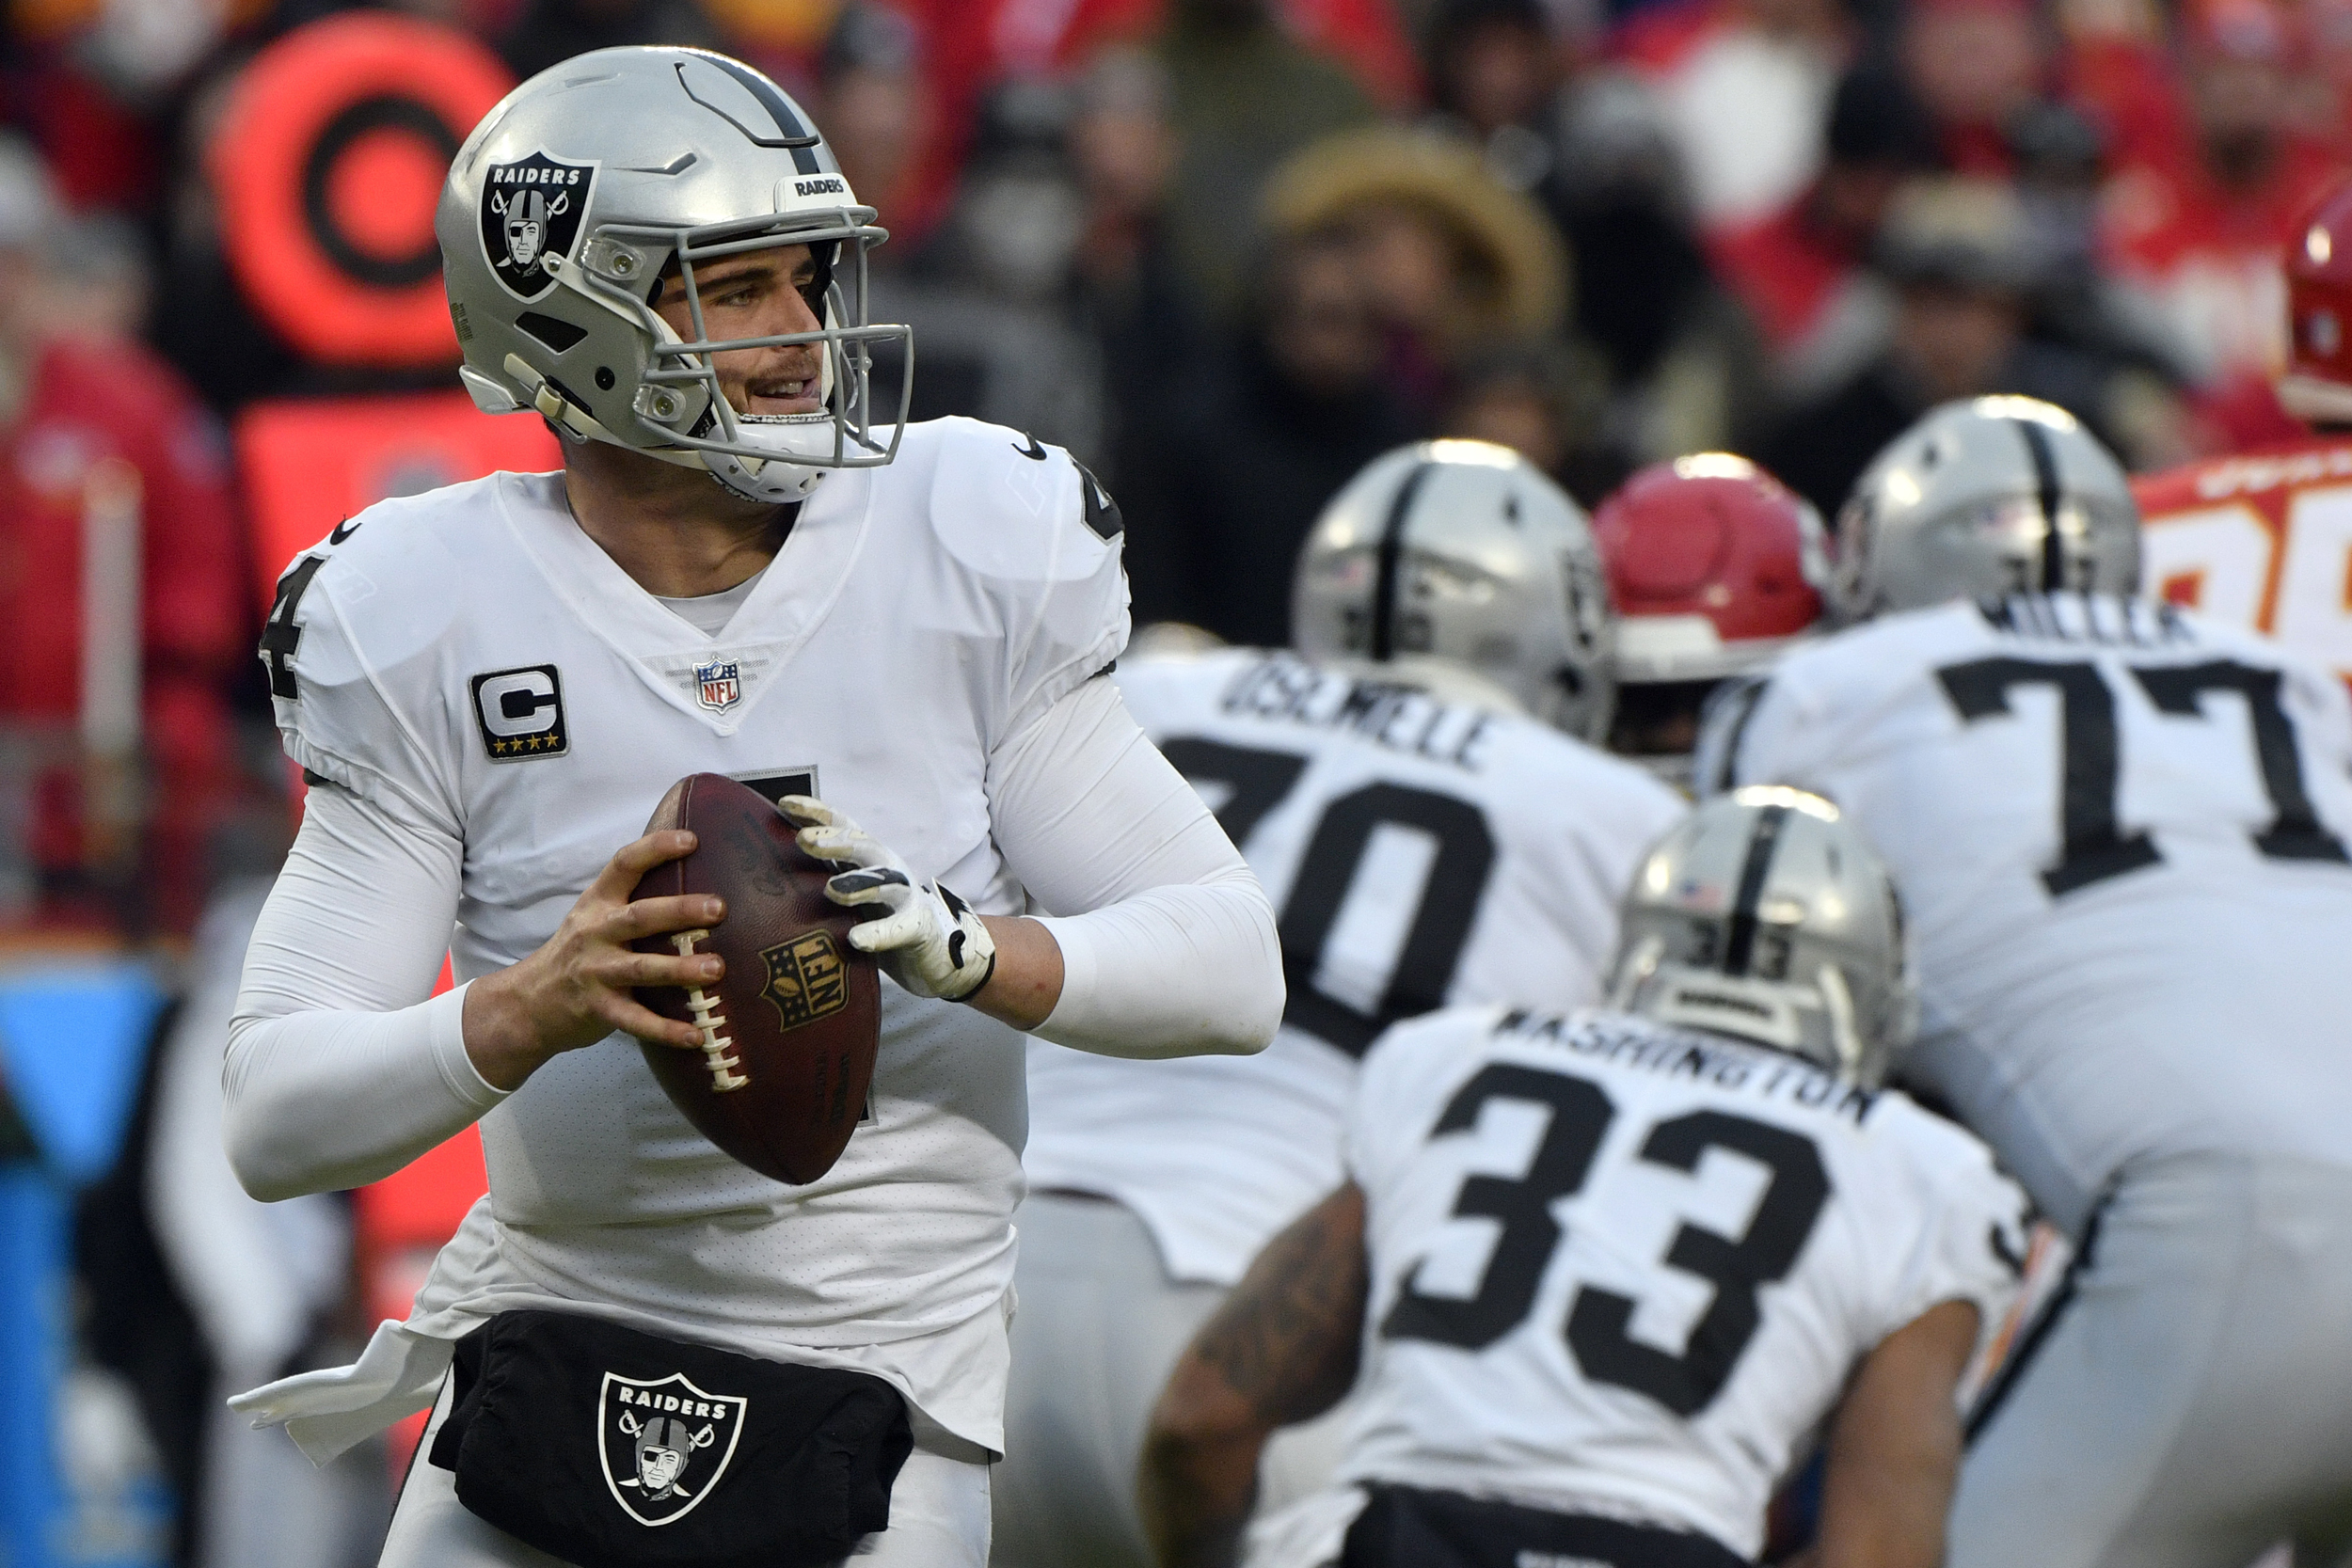 Raiders finalize terms for return to Oakland in 2019